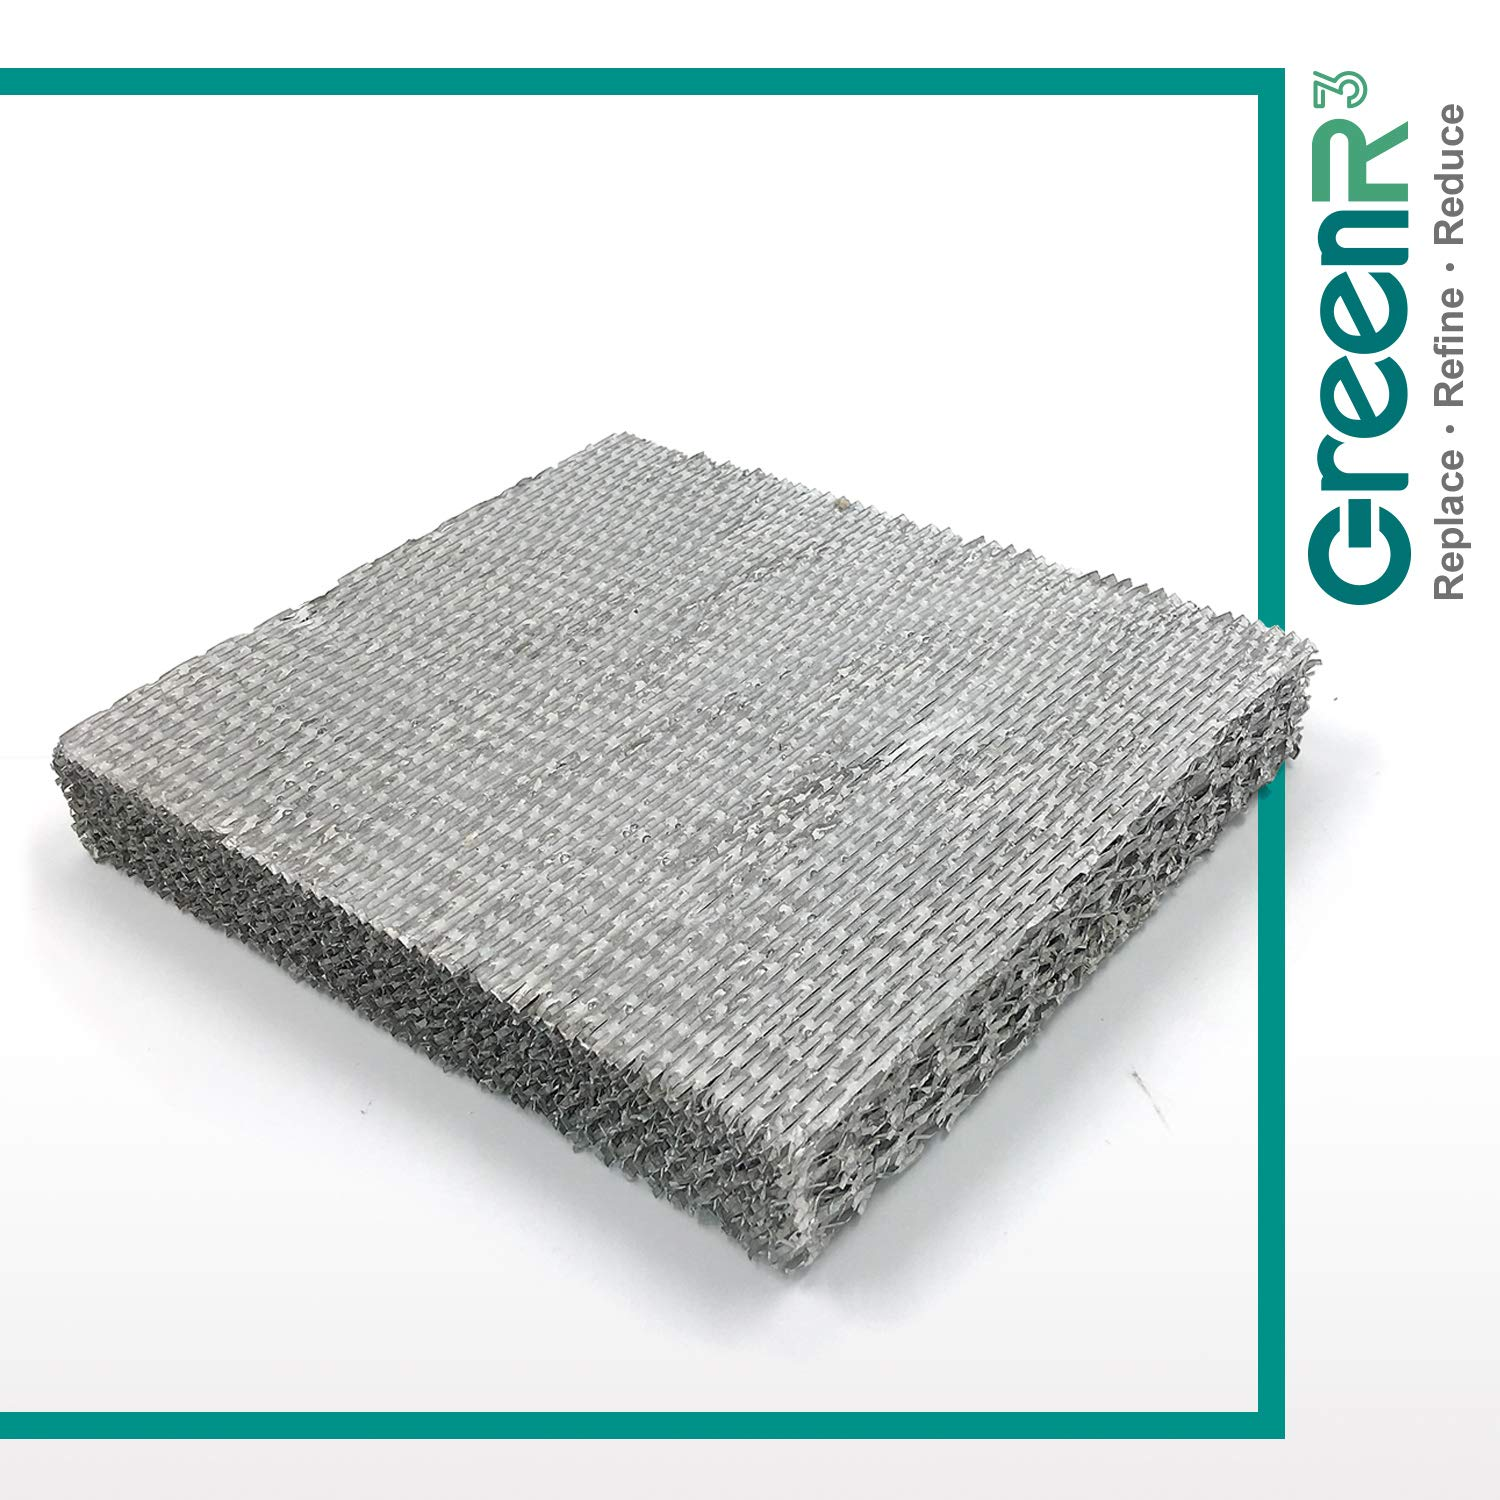 GreenR3 1-PACK AIR FILTER FOR Skuttle Humidifiers A04-1725-052 fits Skuttle 2000 Series White Rodgers HFT2700 HFT2100 Goodman HUM-1725052 HUM-SFTBP Parts Replacement Replenishment and more